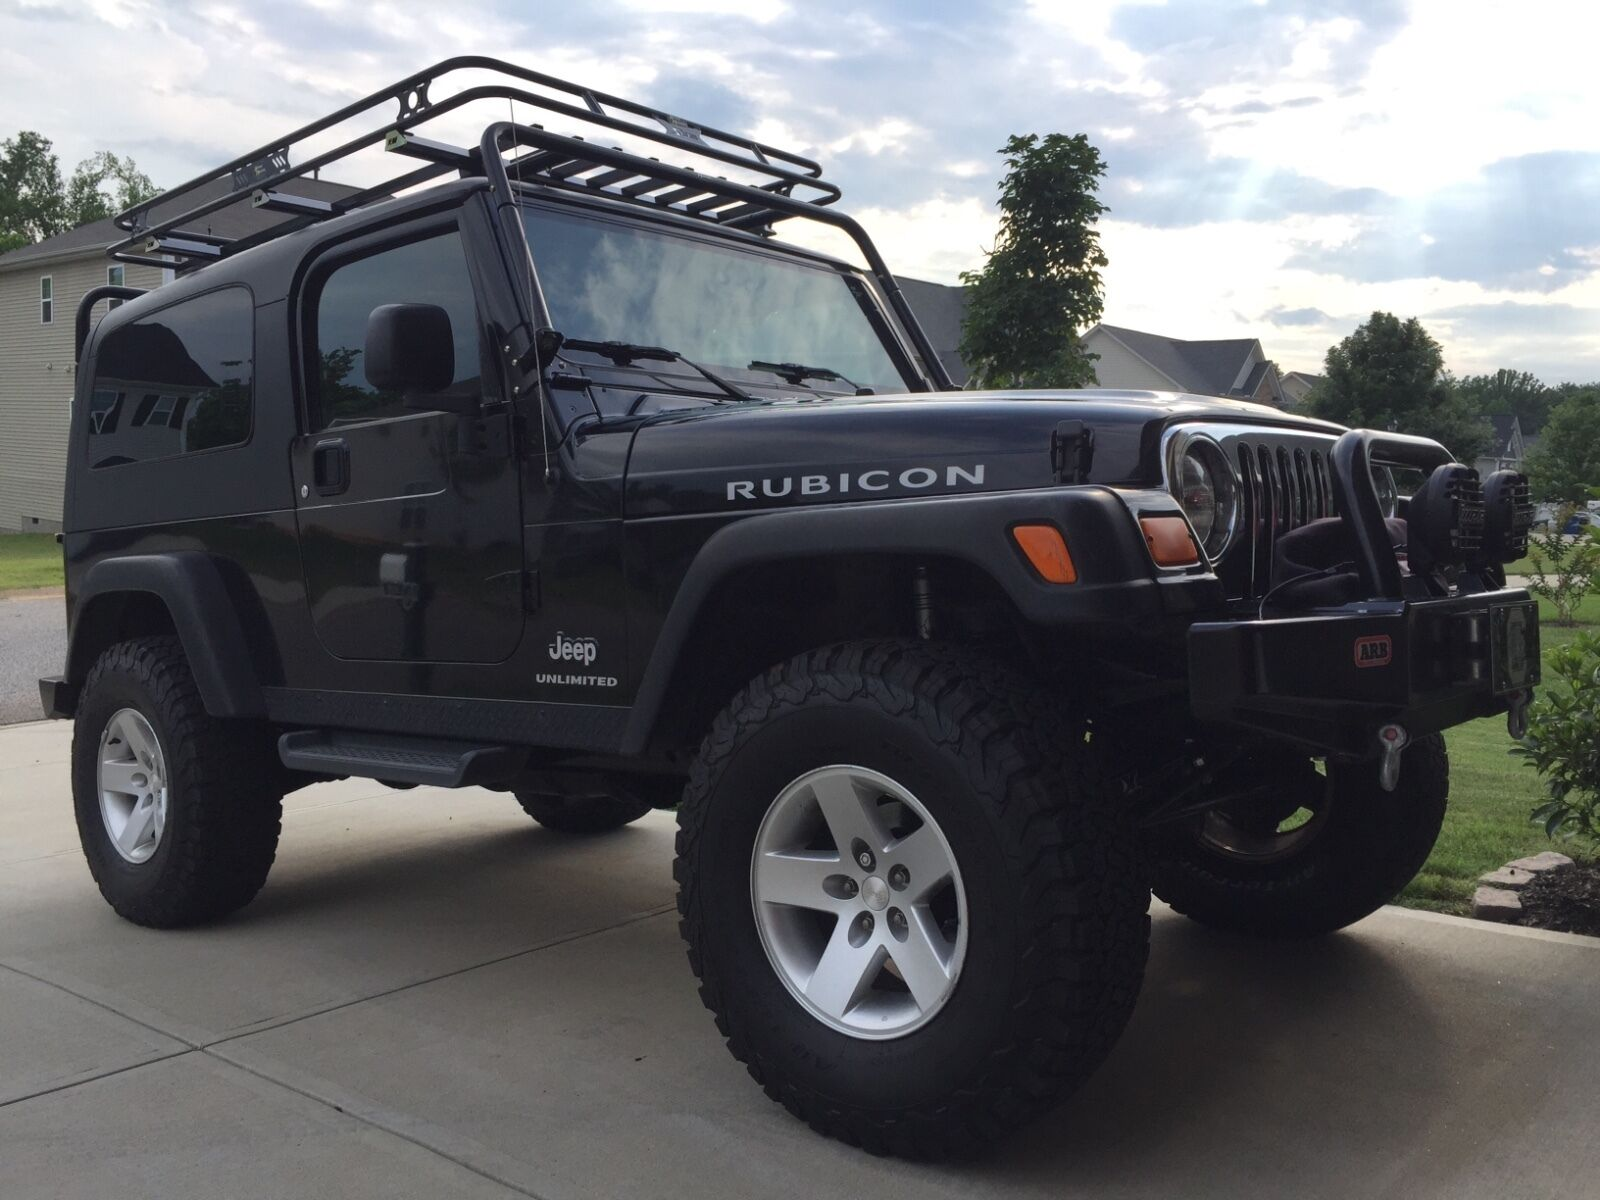 2006 Jeep Wrangler Unlimited Rubicon Low Miles! - Used ...